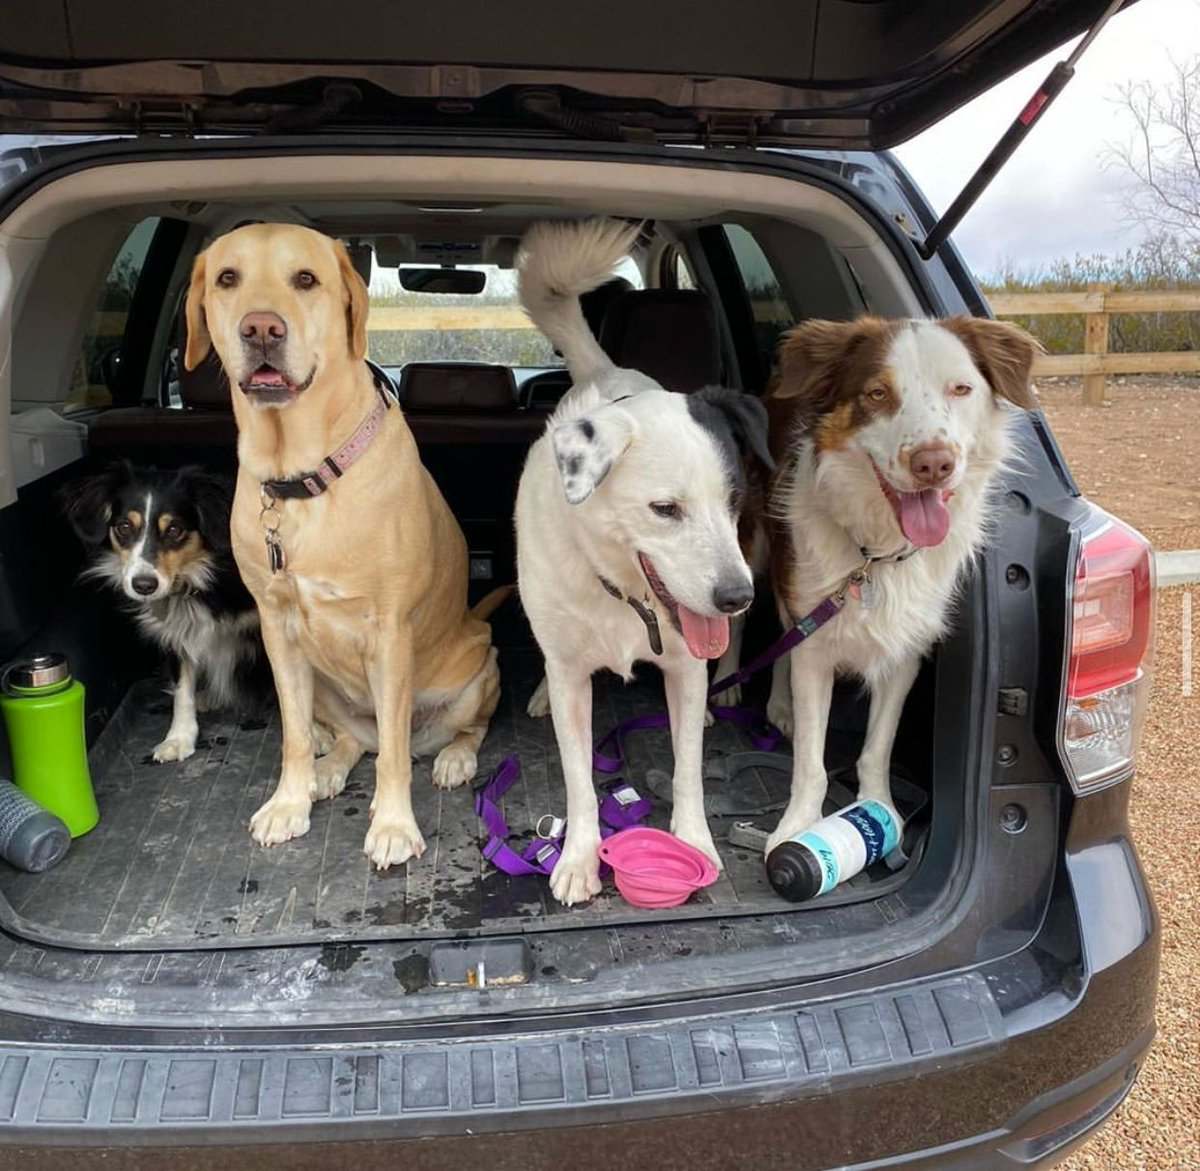 Dogs + Subaru is like PB&J!    Take a look at some of the pet-friendly amenities Subaru has to offer: https://bit.ly/2AELqtH   : @therightbeet   #Subaru #Subie #subieflow #subienation #subilove #HTX #houston #houstontx #texas #carsales #cars #carsforsale #autosalespic.twitter.com/8Go6vfLh4Z